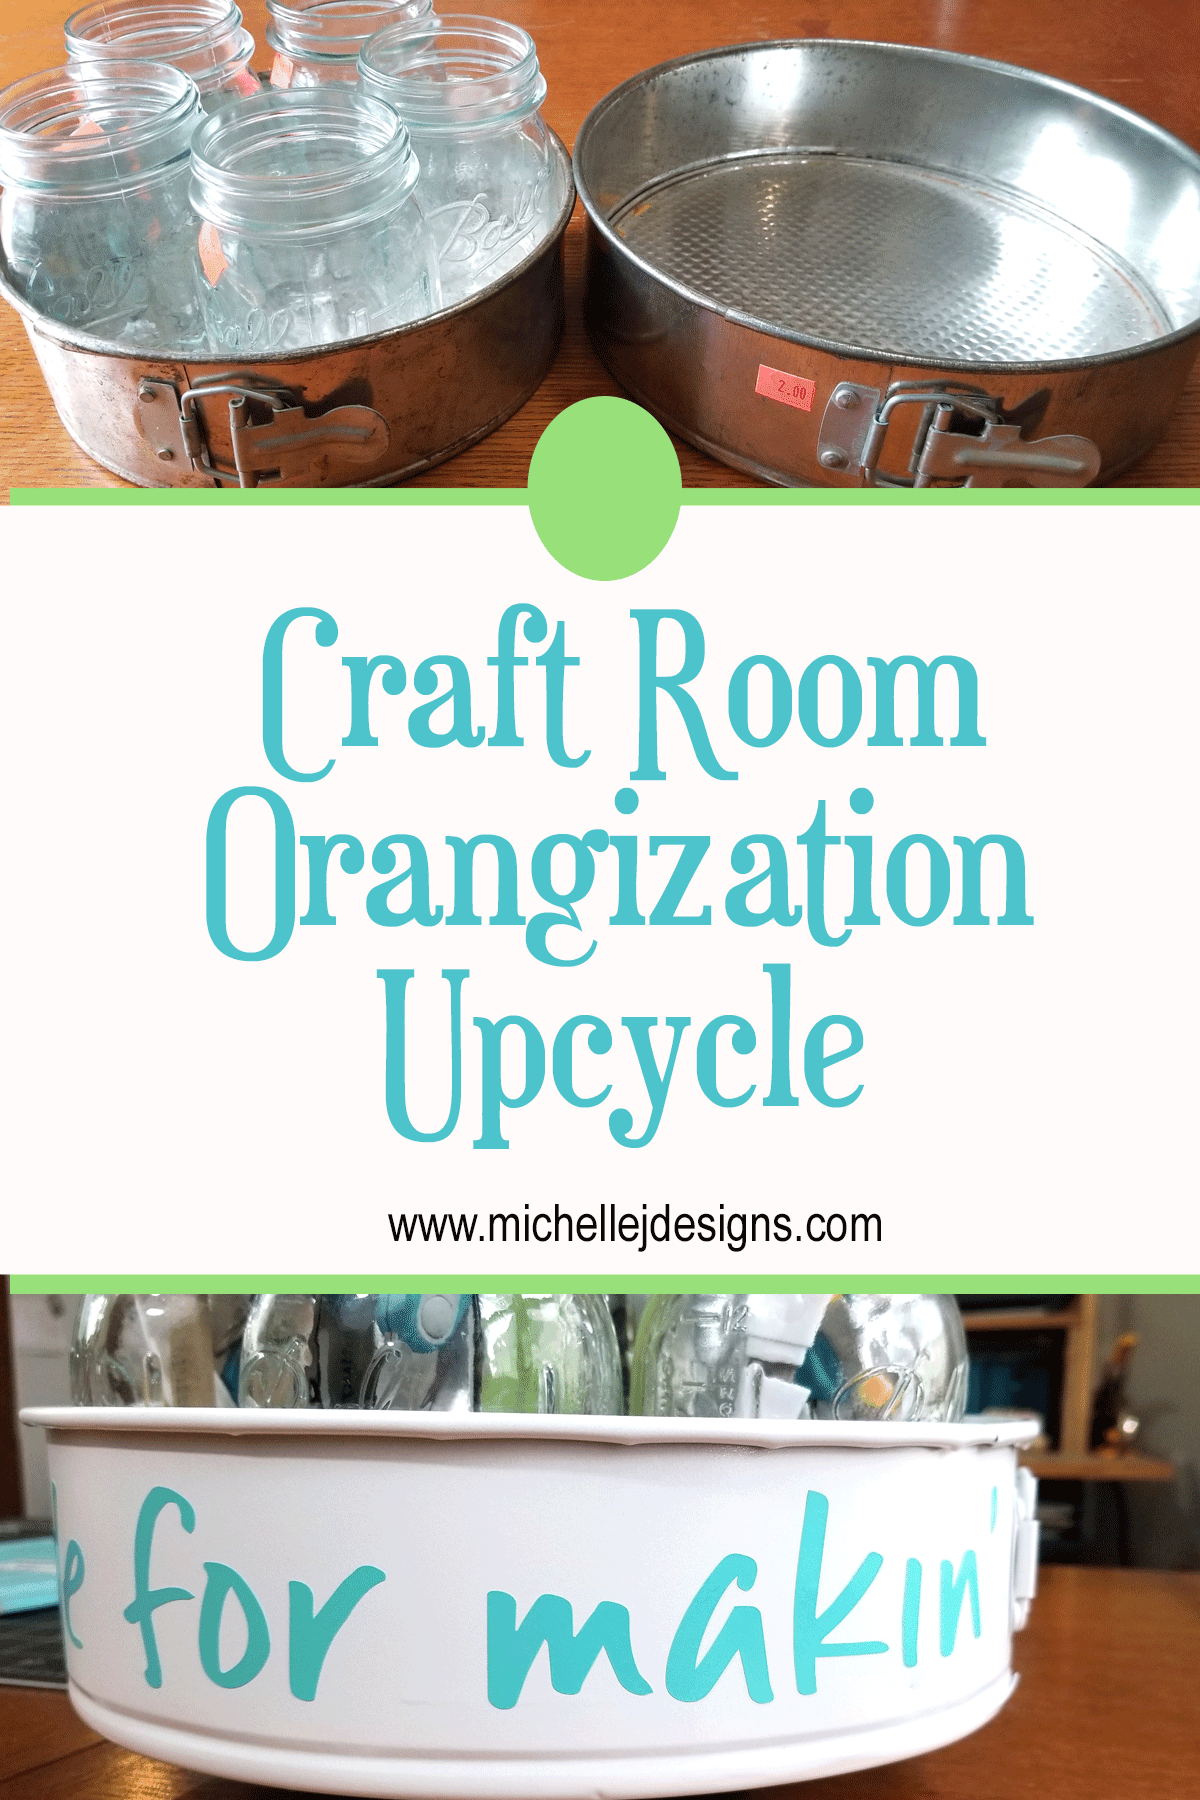 Before and after pics of a tiered craft tool organizer